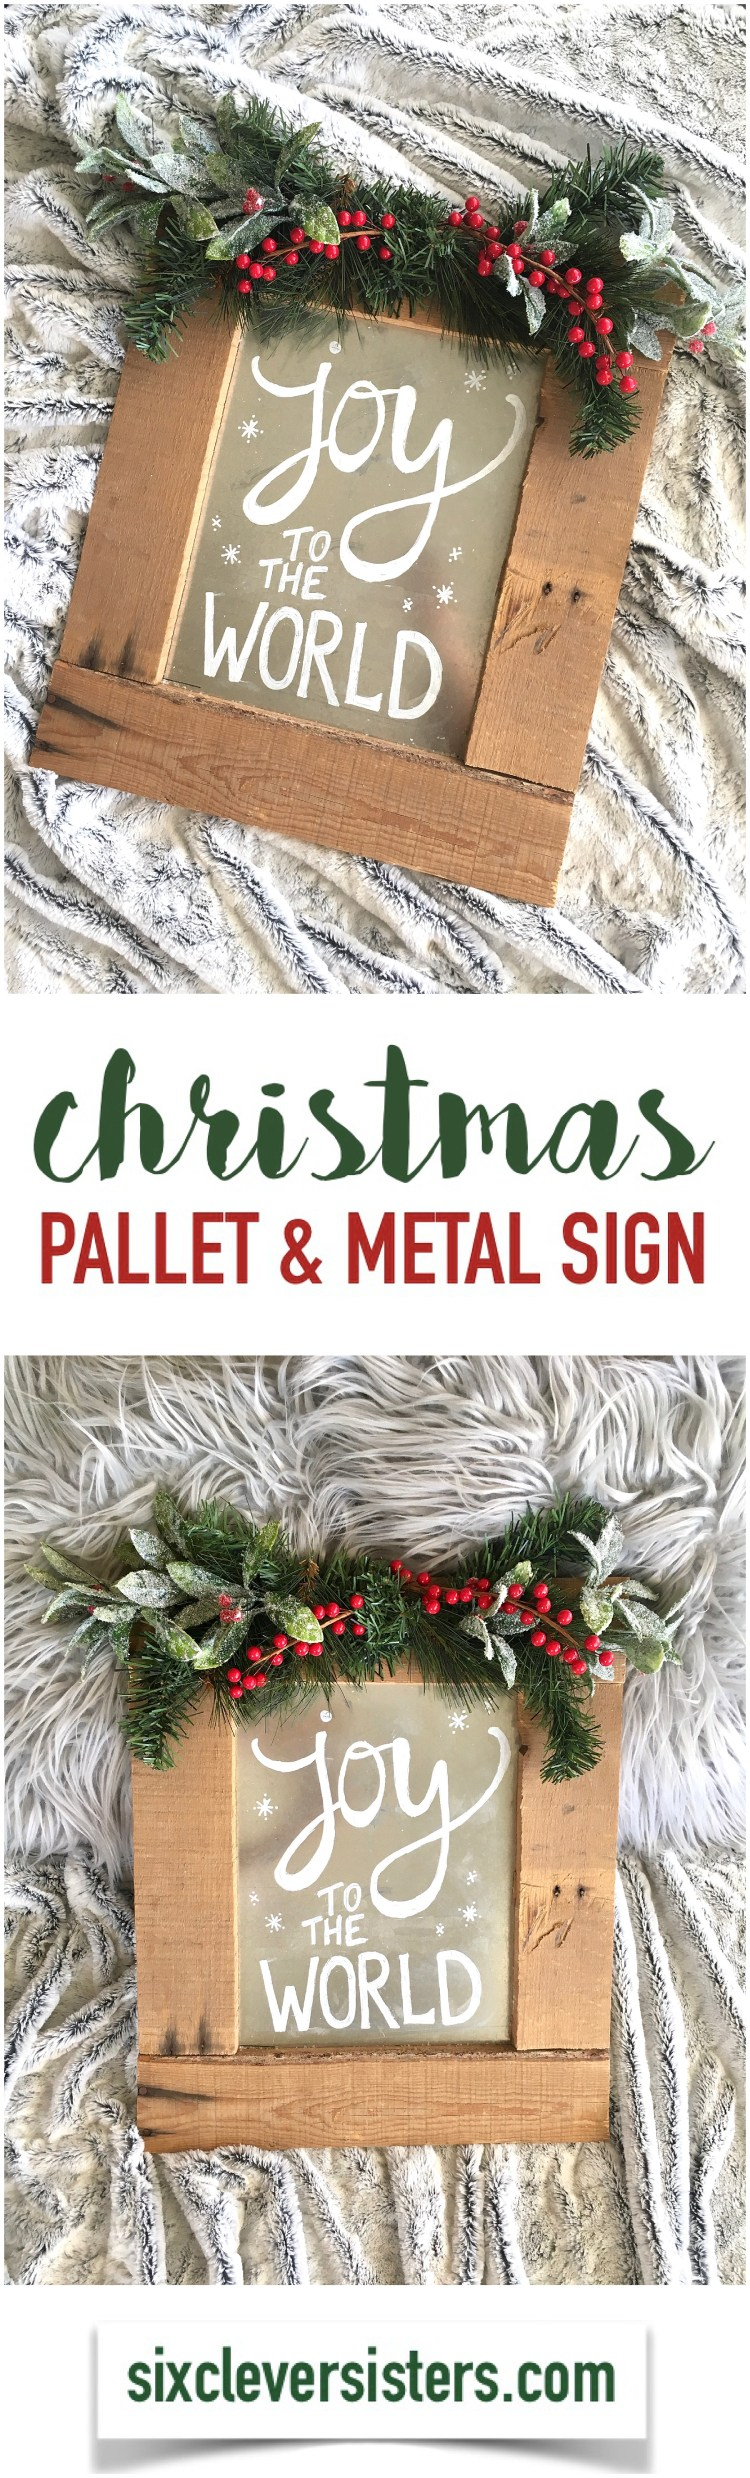 Christmas Pallet Sign | DIY Pallet Sign | Christmas Crafts | Christmas Time | Wood and Metal Sign | Christmas Pallet Ideas | Christmas Pallet Project | Christmas Pallet Crafts | Christmas Signs Wood | Christmas Signs and Sayings | Christmas Signs on Wood | Christmas Signs DIY | Six Clever Sisters